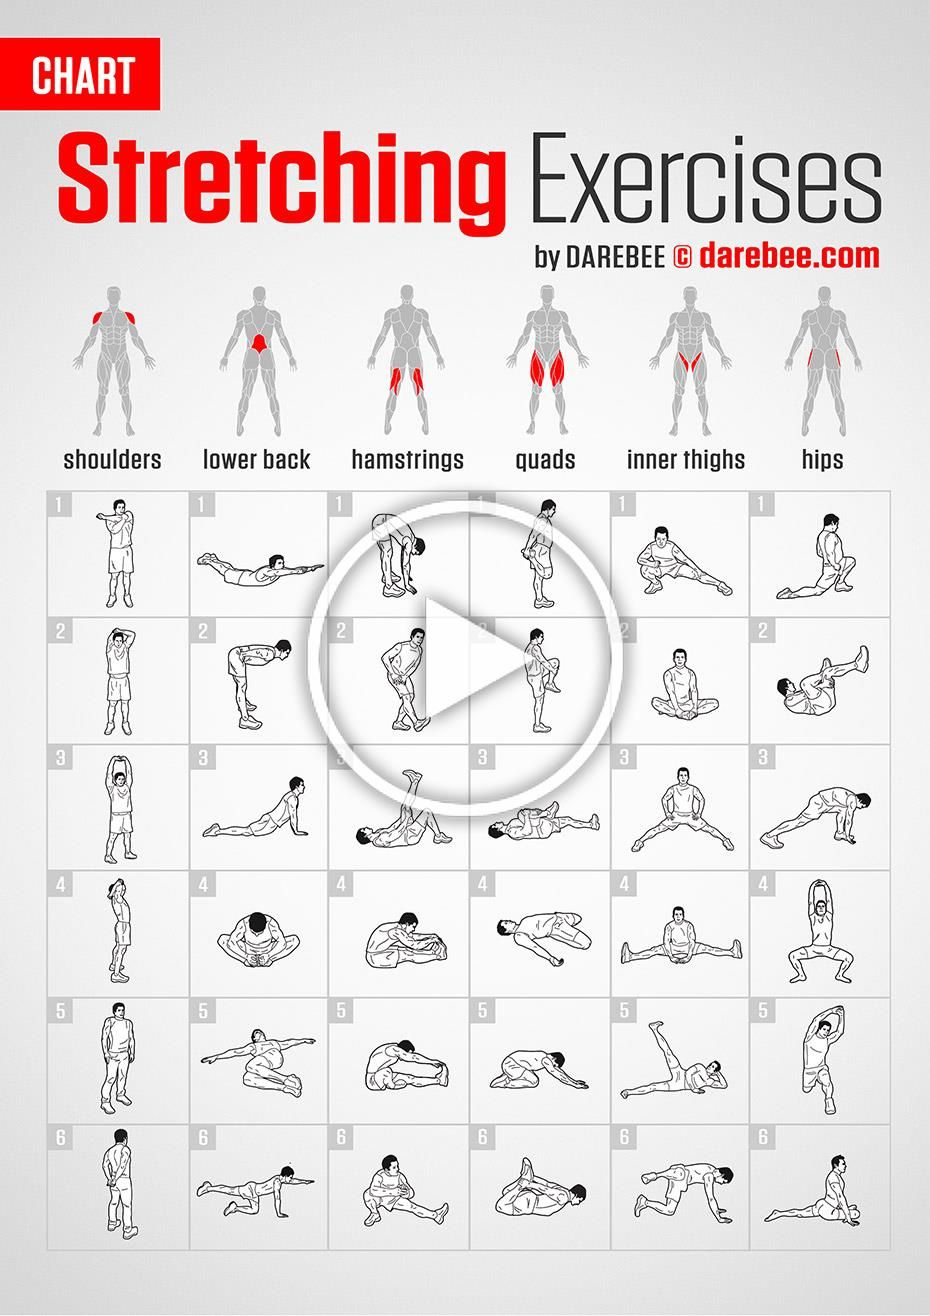 Stretching Exercises | Chart by DAREBEE #darebee #fitness #workout #stretching #fitnesschart